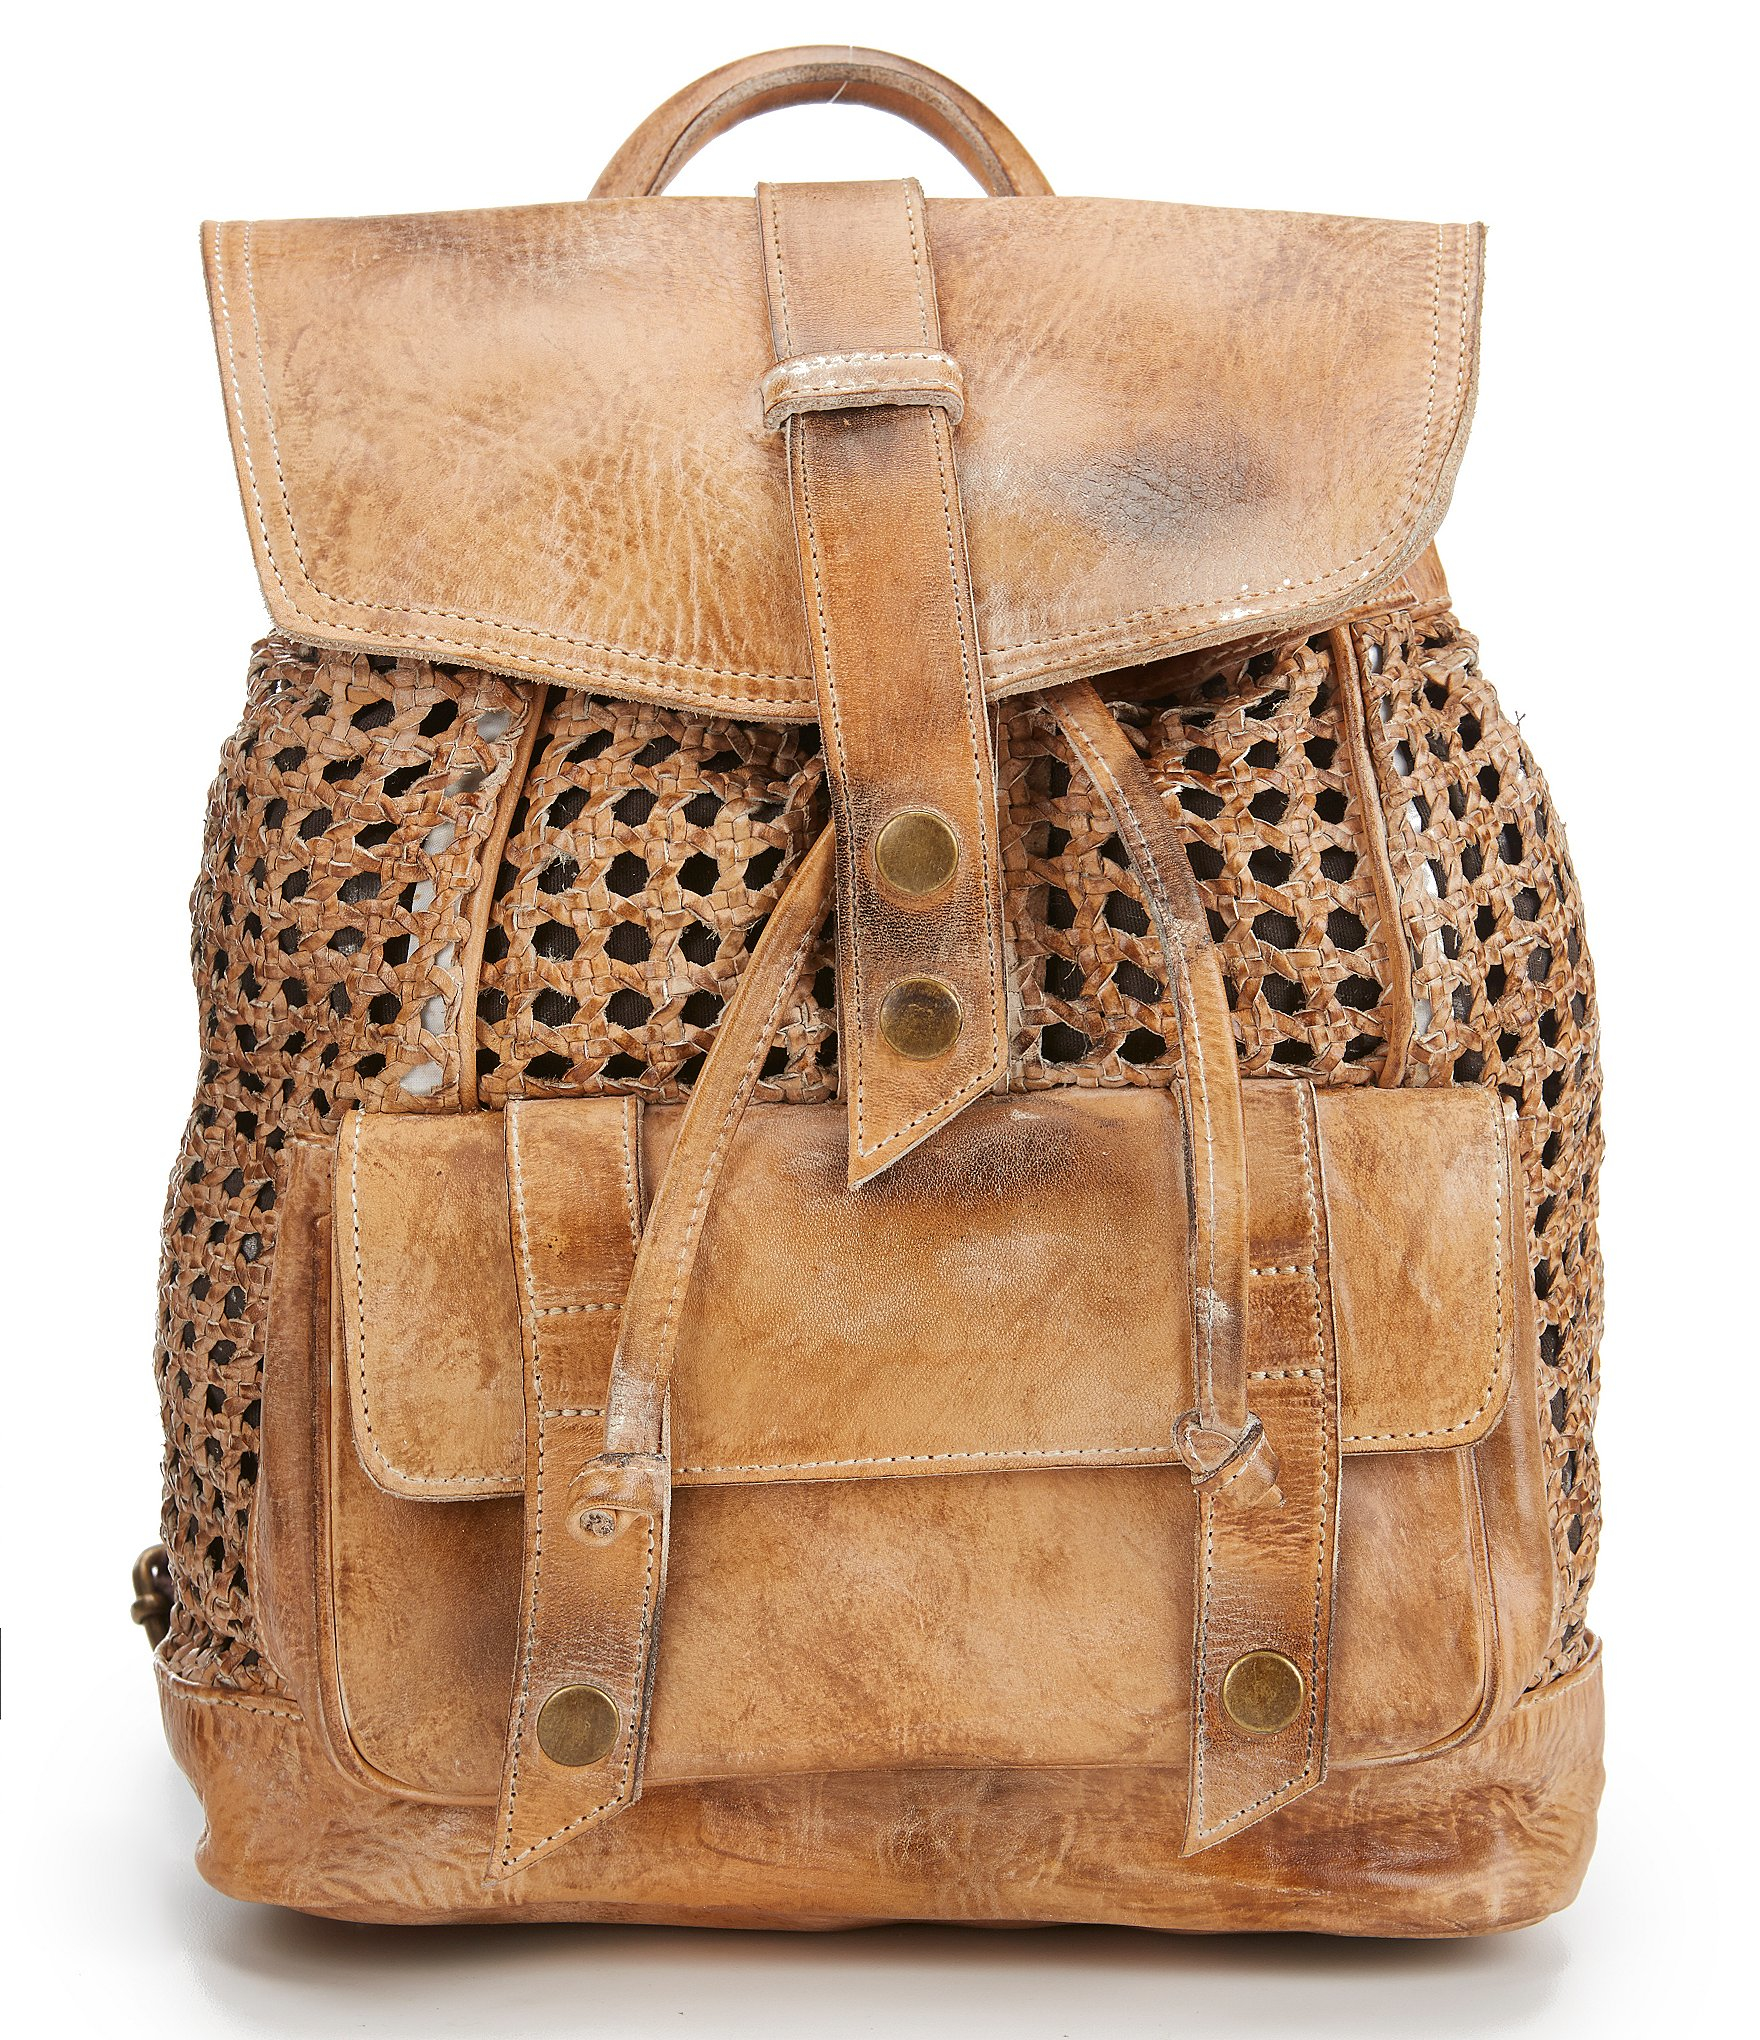 Lyst - Bed Stu Naples Hand-woven Drawstring Backpack in Brown 40738af7facd5